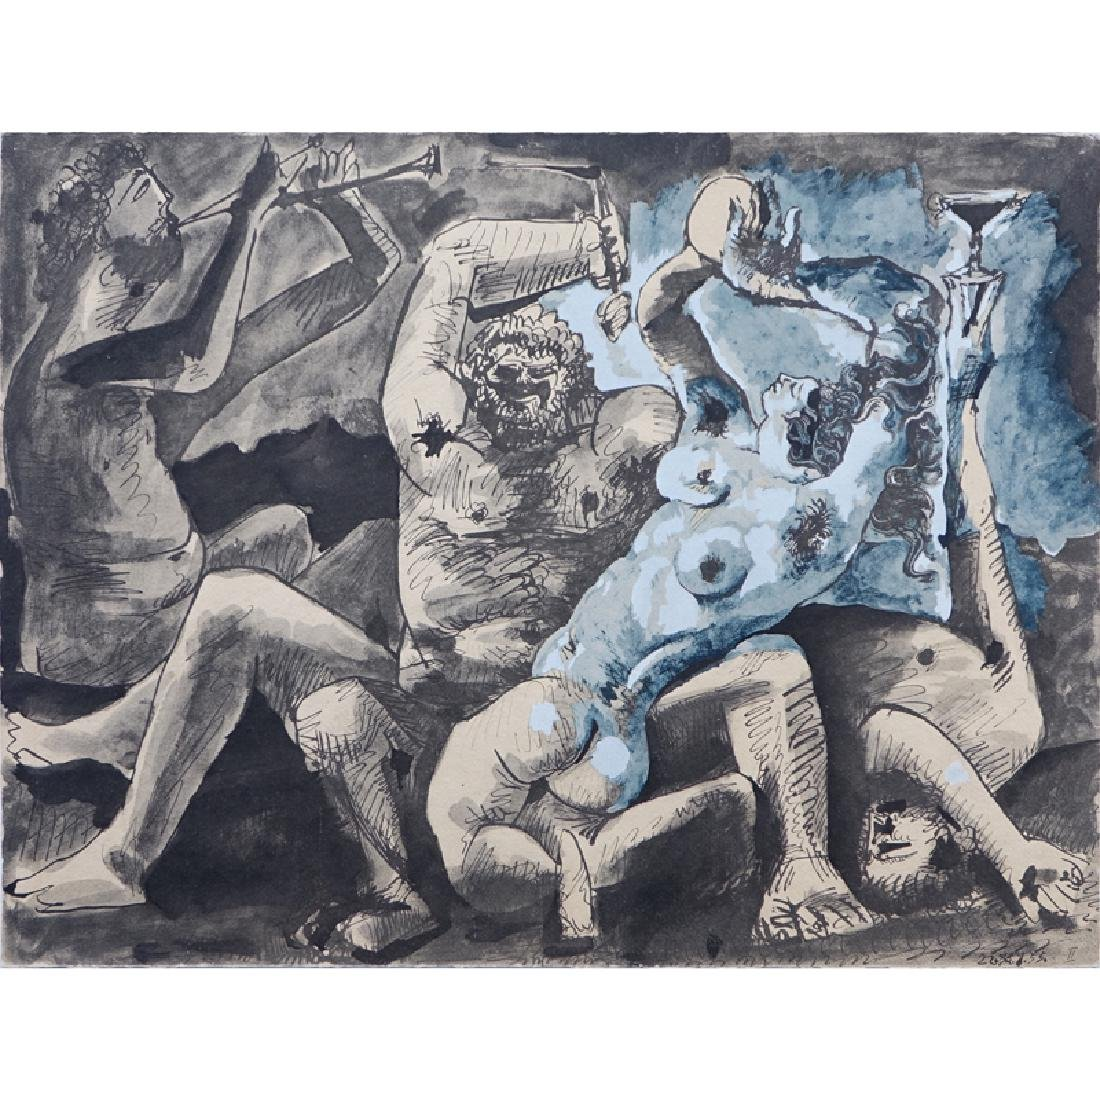 After Pablo Picasso, Spanish (1881-1973) Lithograph,